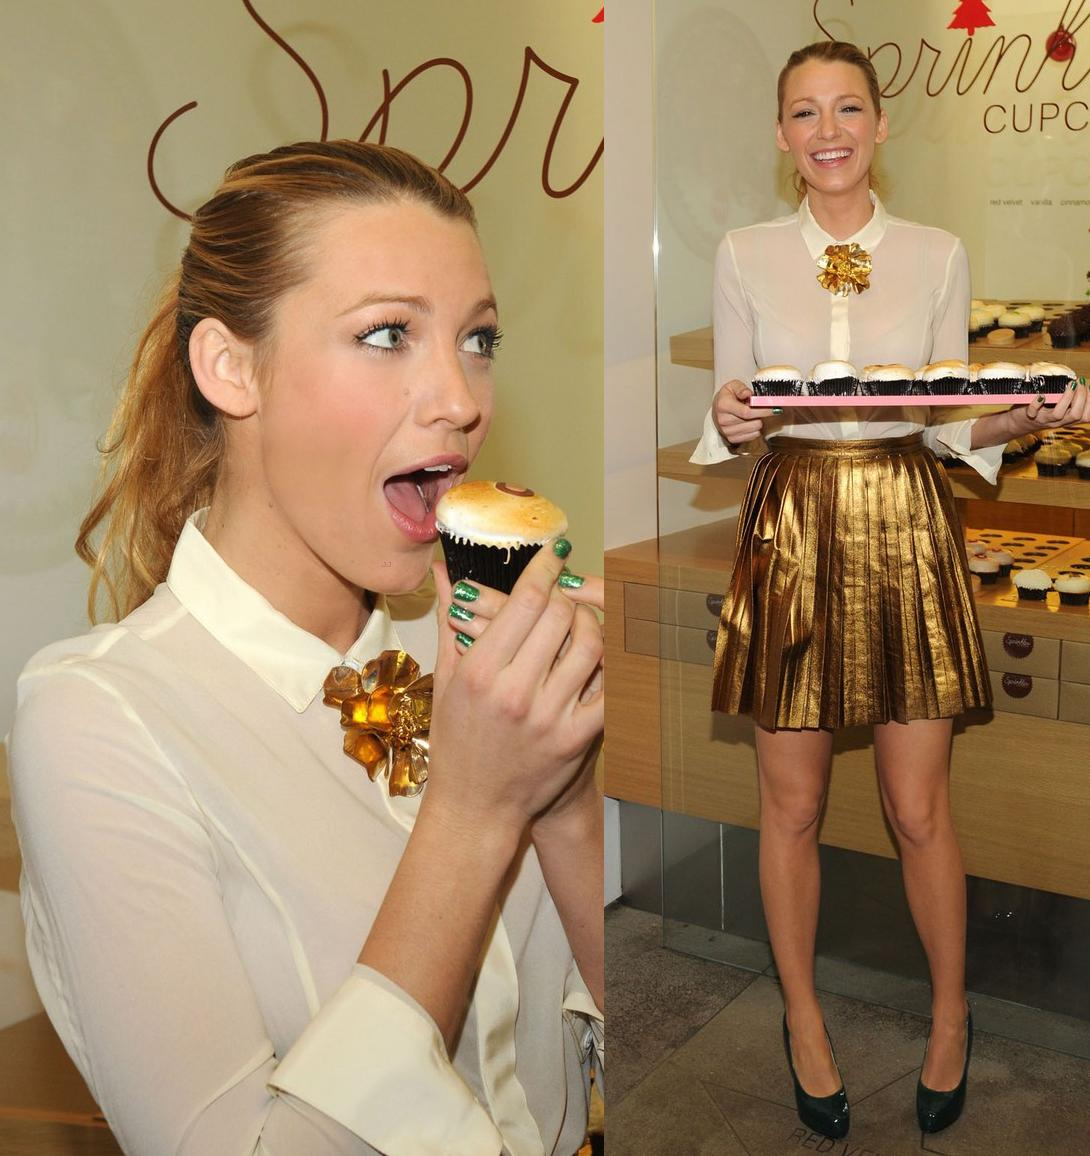 Blake Live rocking a Gucci gold pleated skirt with a white button-up shirt and green Brian Atwood pumps for a Sprinkles cupcake event in NYC.